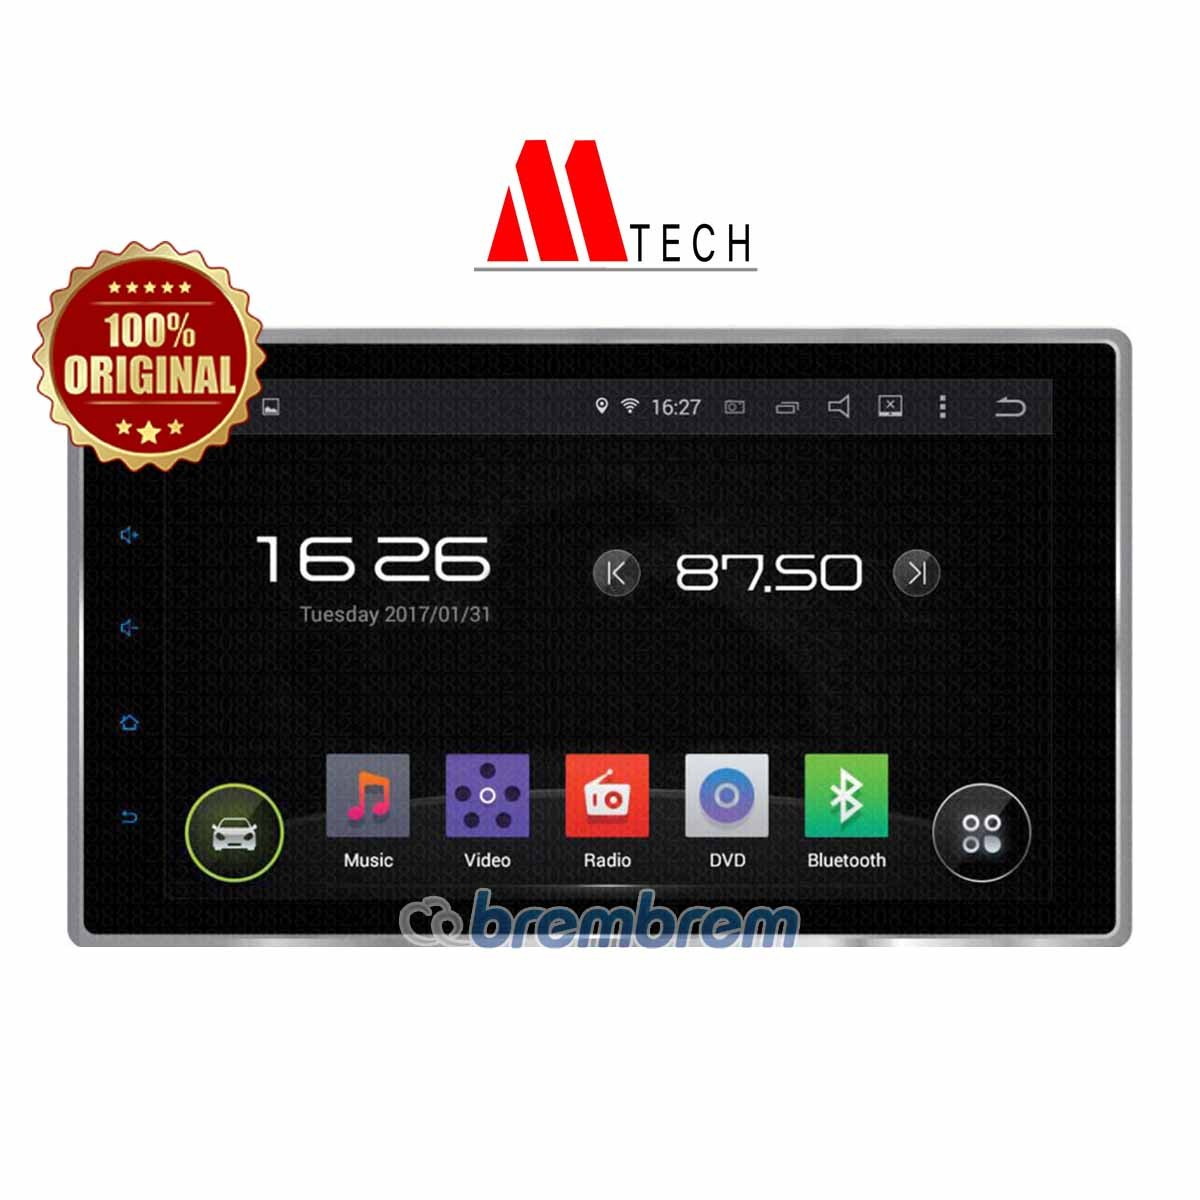 MTECH MM 8803 ANDROID - HEADUNIT DOUBLE DIN (PREORDER)